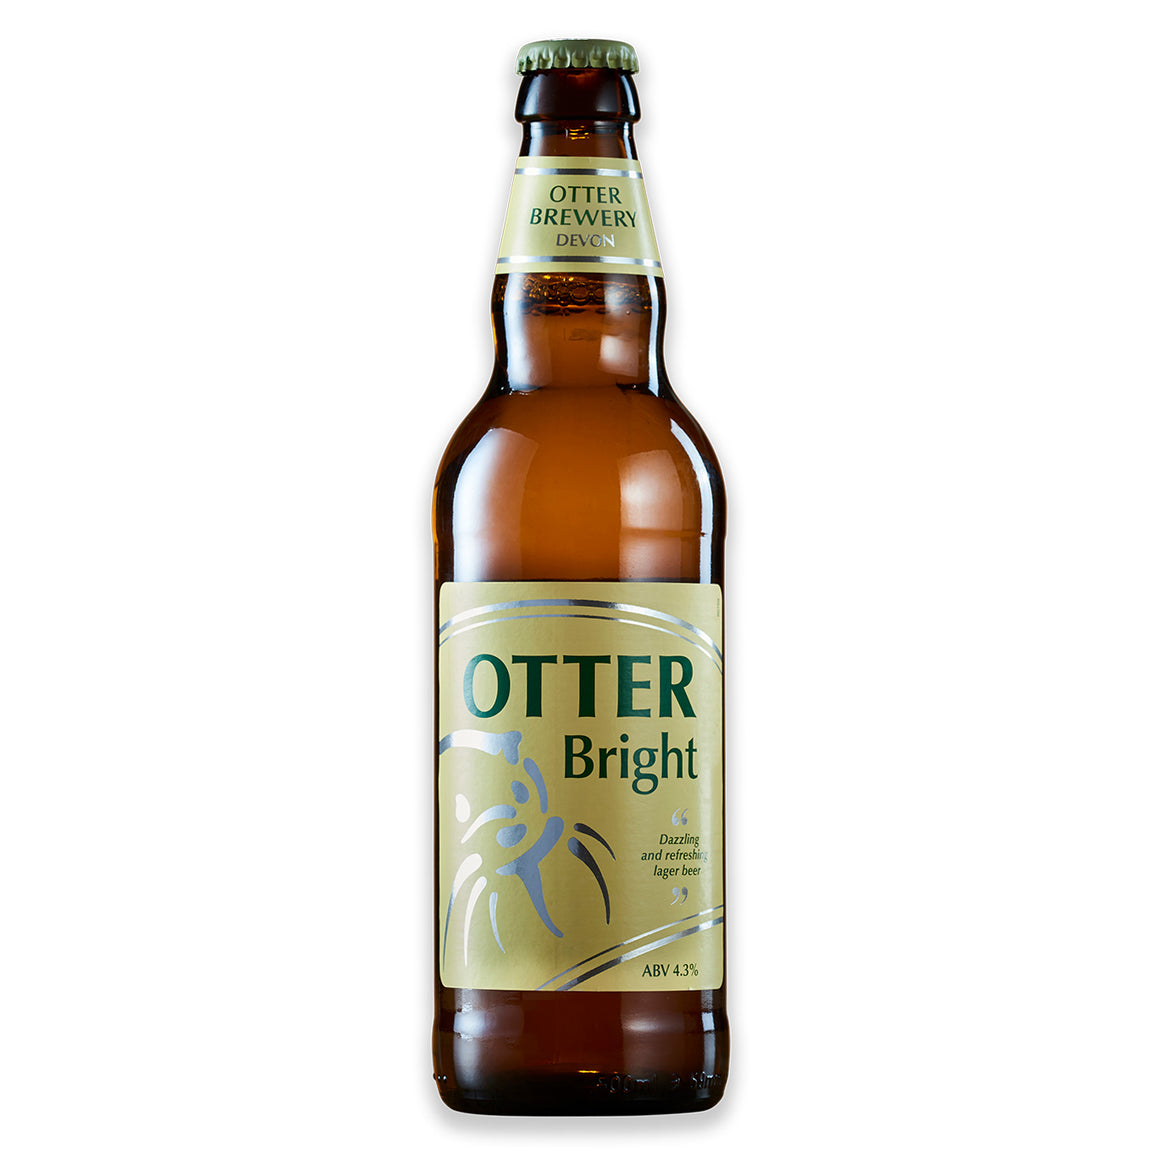 Otter Brewery - Otter Bright - Lager Beer - 500ml Bottle